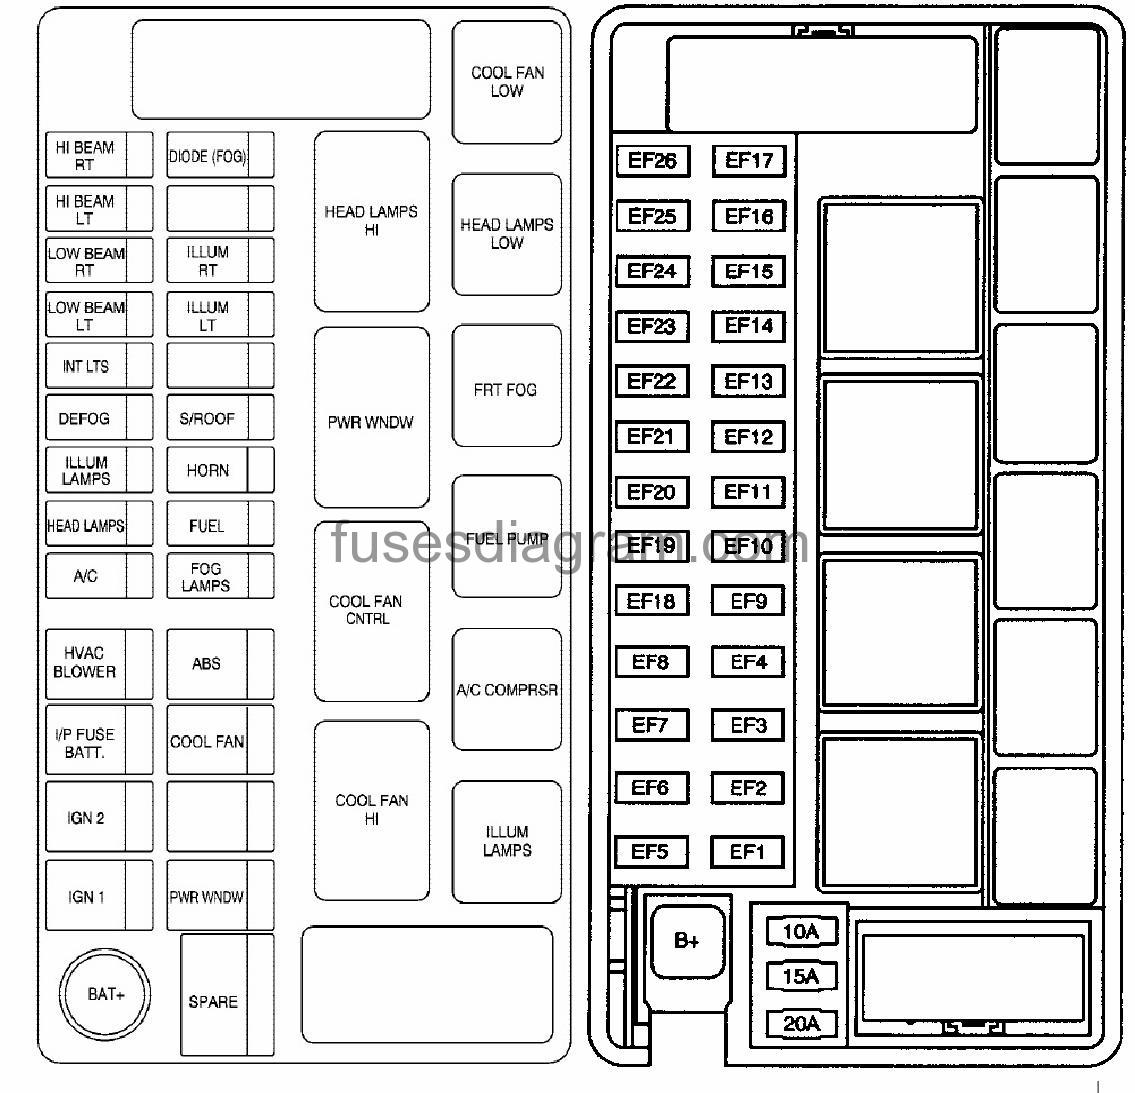 2006 Chevy Aveo Fuse Box Diagram Great Design Of Wiring 2008 Tahoe Wiper Chevrolet Flasher Relay Windshield Location